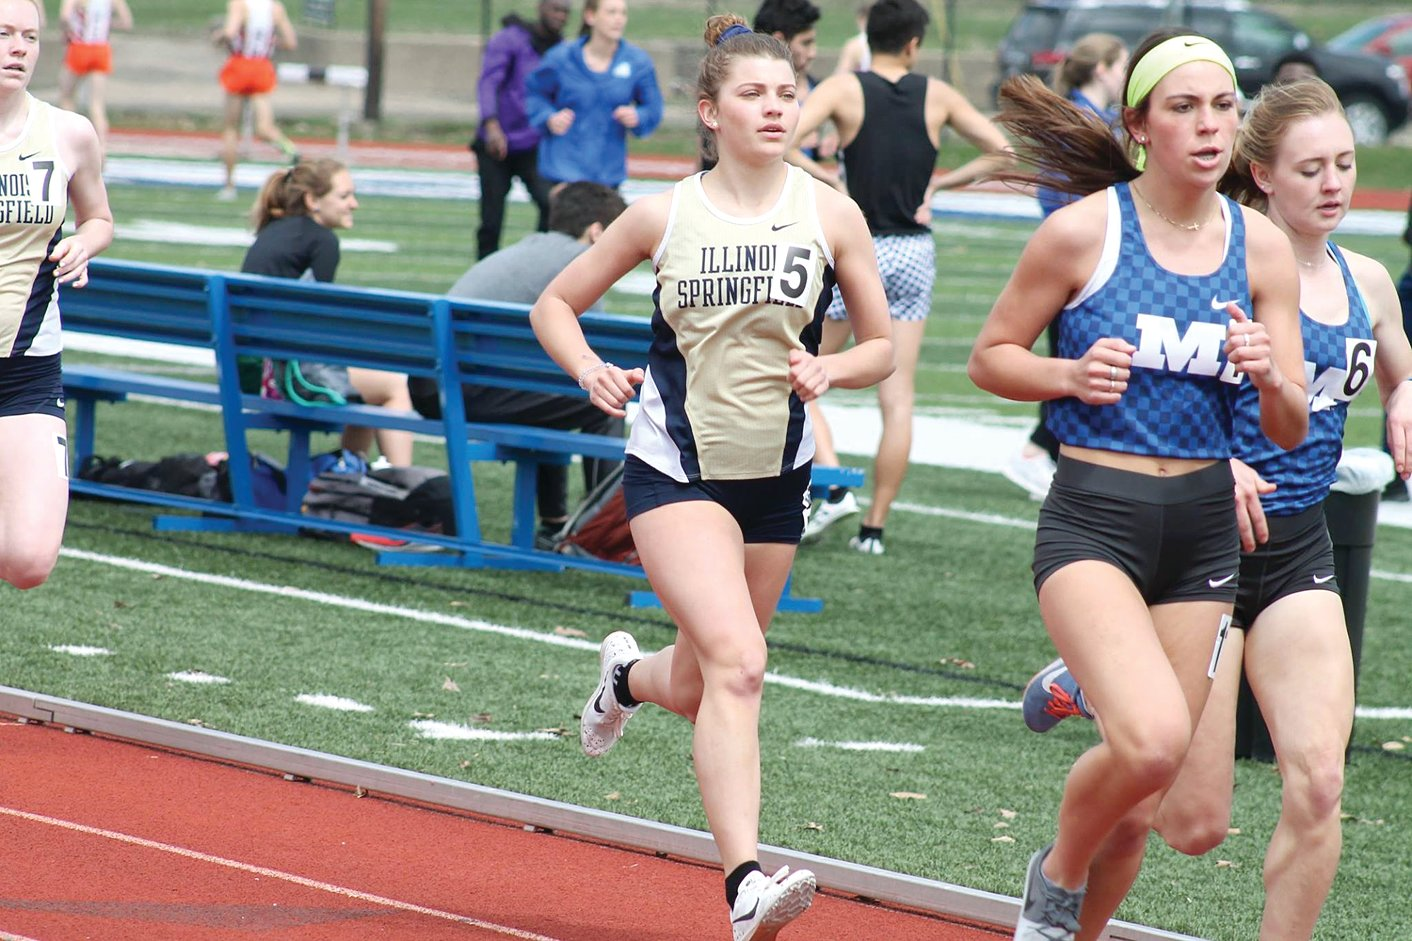 Litchfield grad Lexi Throne (#5) finished fifth in the women's 1500 meters at the Big Blue Invite in Decatur on Saturday, April 6. Throne, who runs for University of Illinois-Springfield, also competed in the Washington Invite on March 29, placing 82nd in the 5000 meter run.